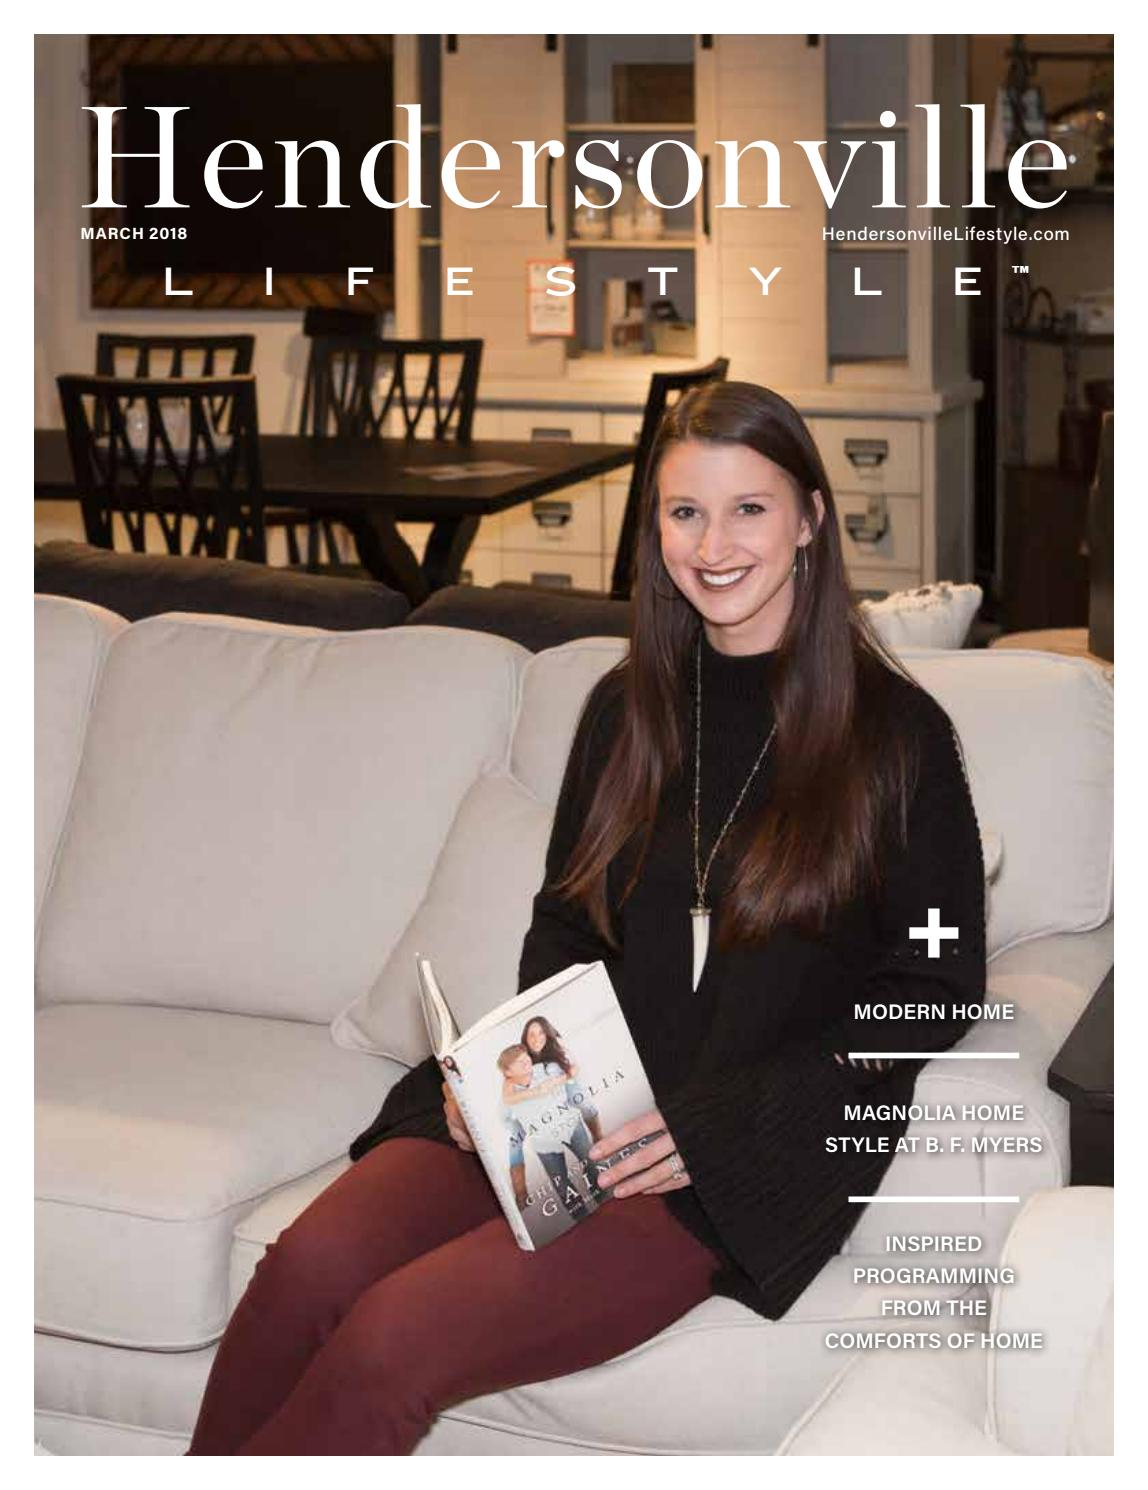 Bf Myers Goodlettsville Tennessee : myers, goodlettsville, tennessee, Hendersonville,, March, Lifestyle, Publications, Issuu